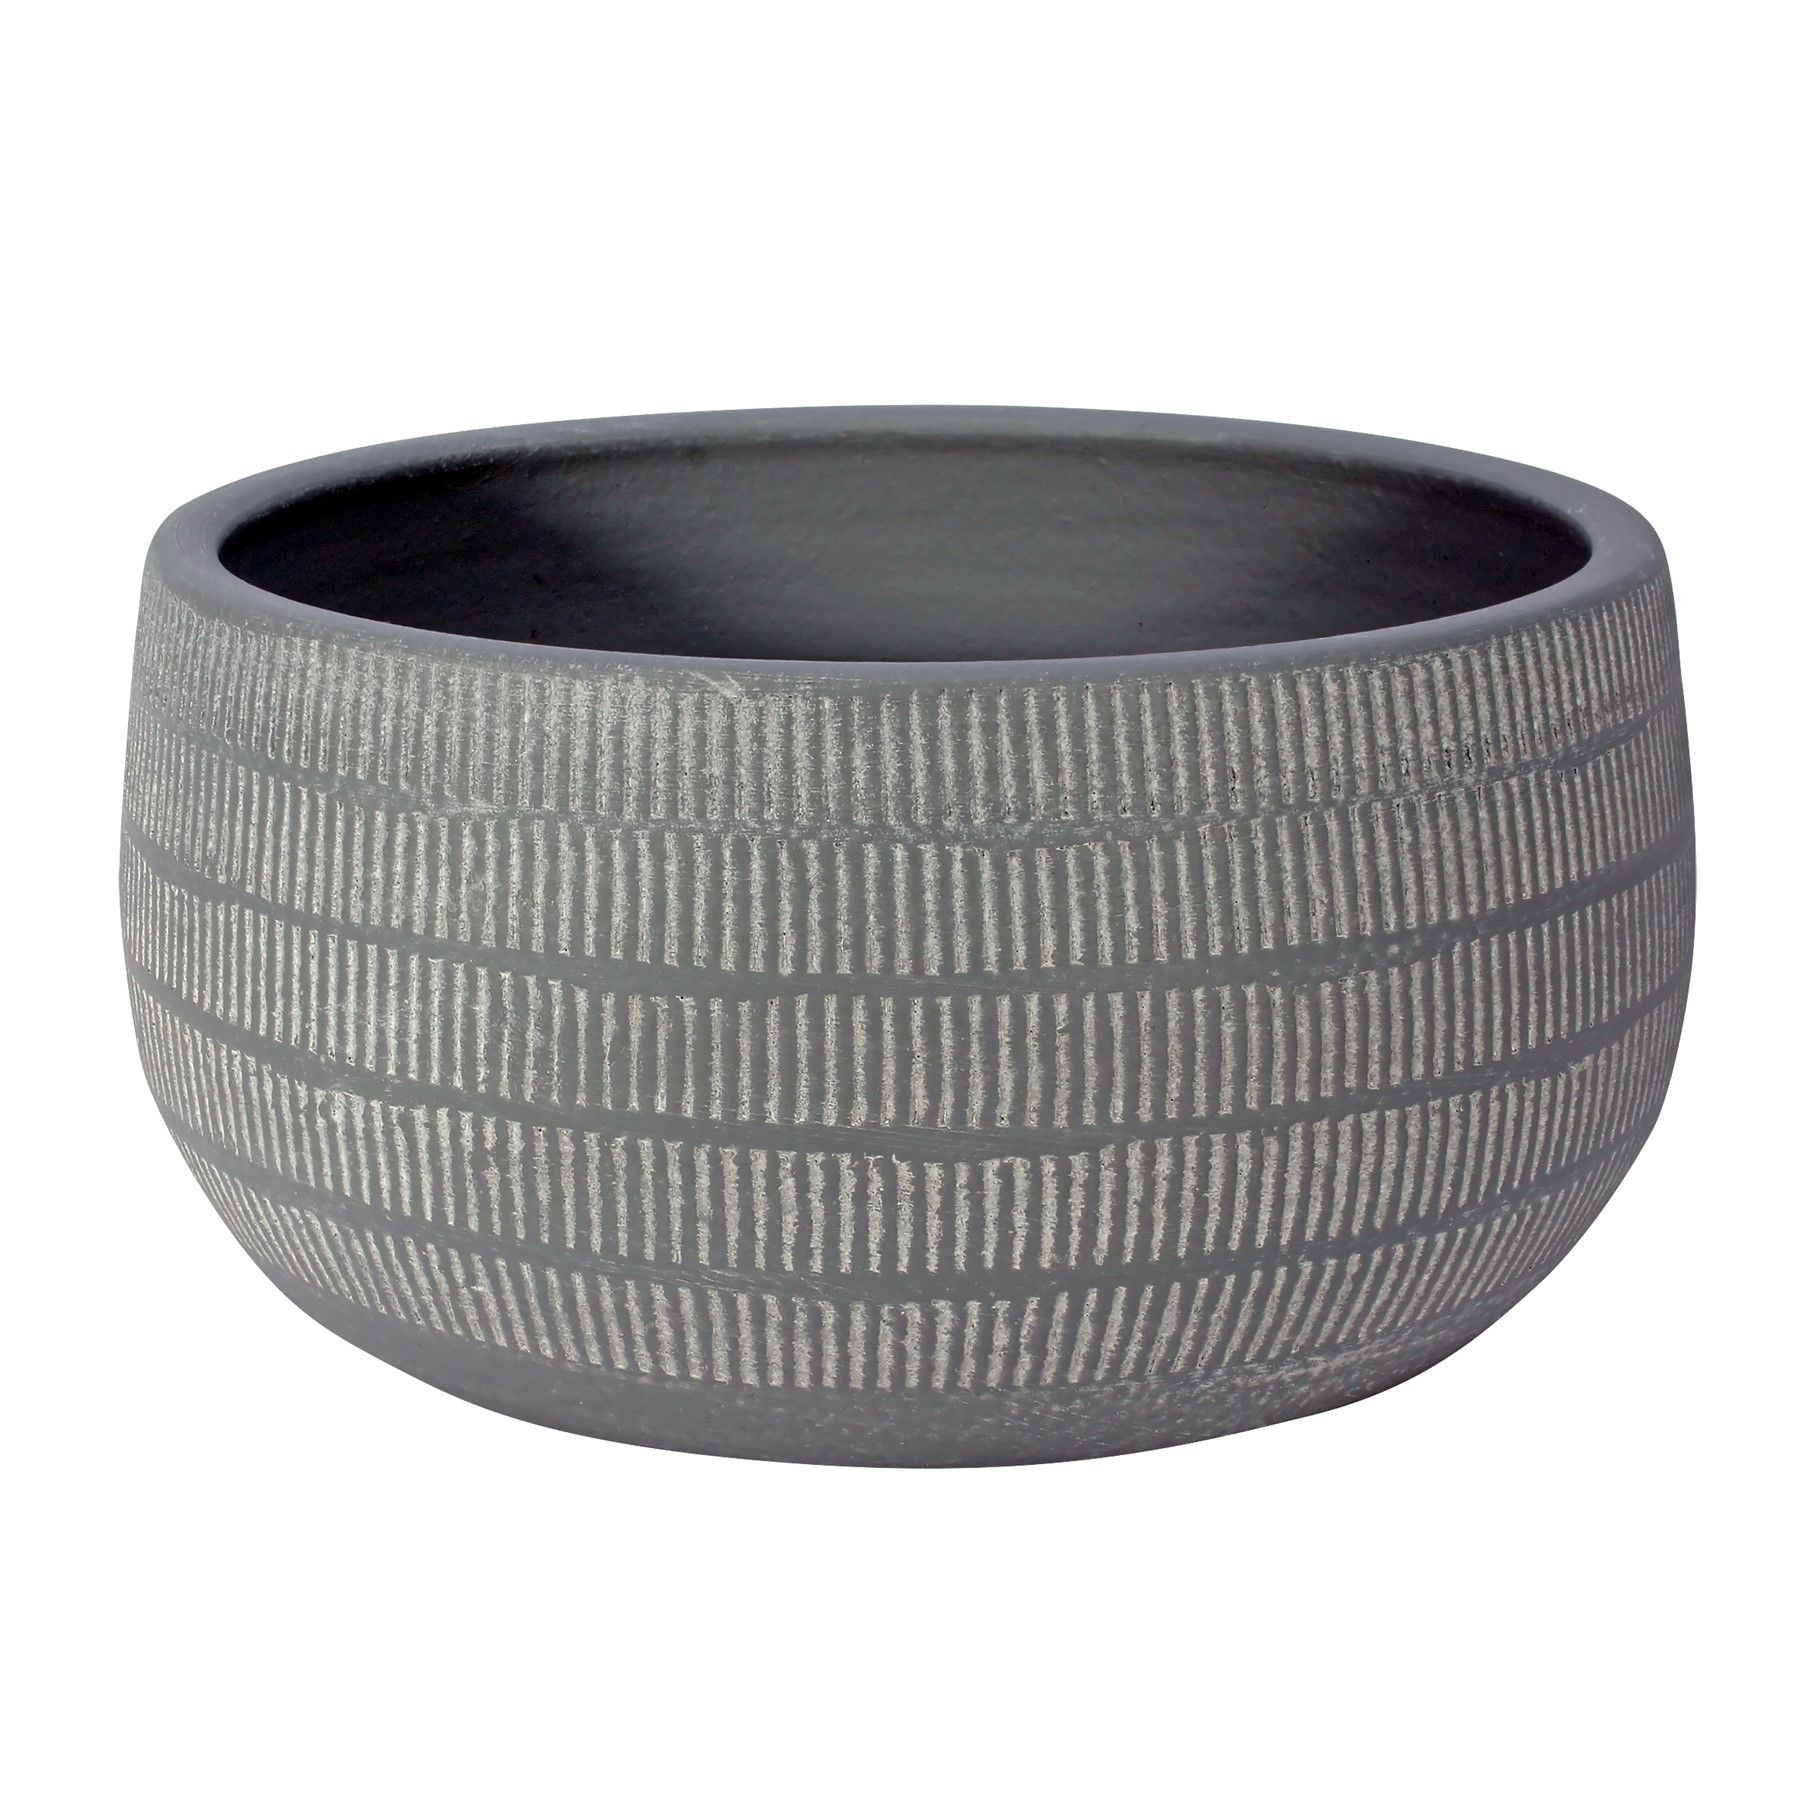 Amalfi Pot Light Grey (23cm x 11cm)